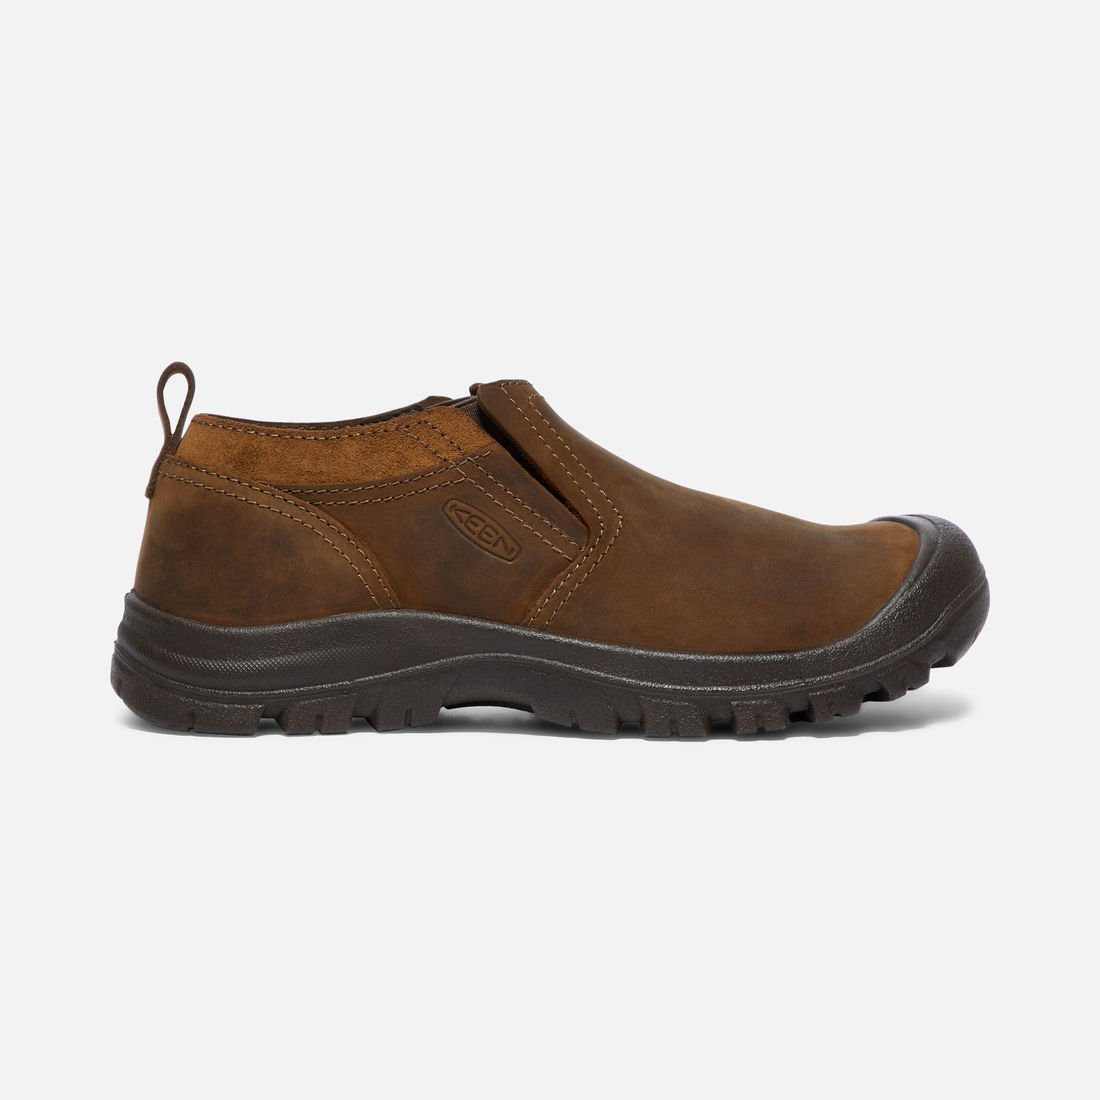 Keen Men's Grayson Flip On Full Grain